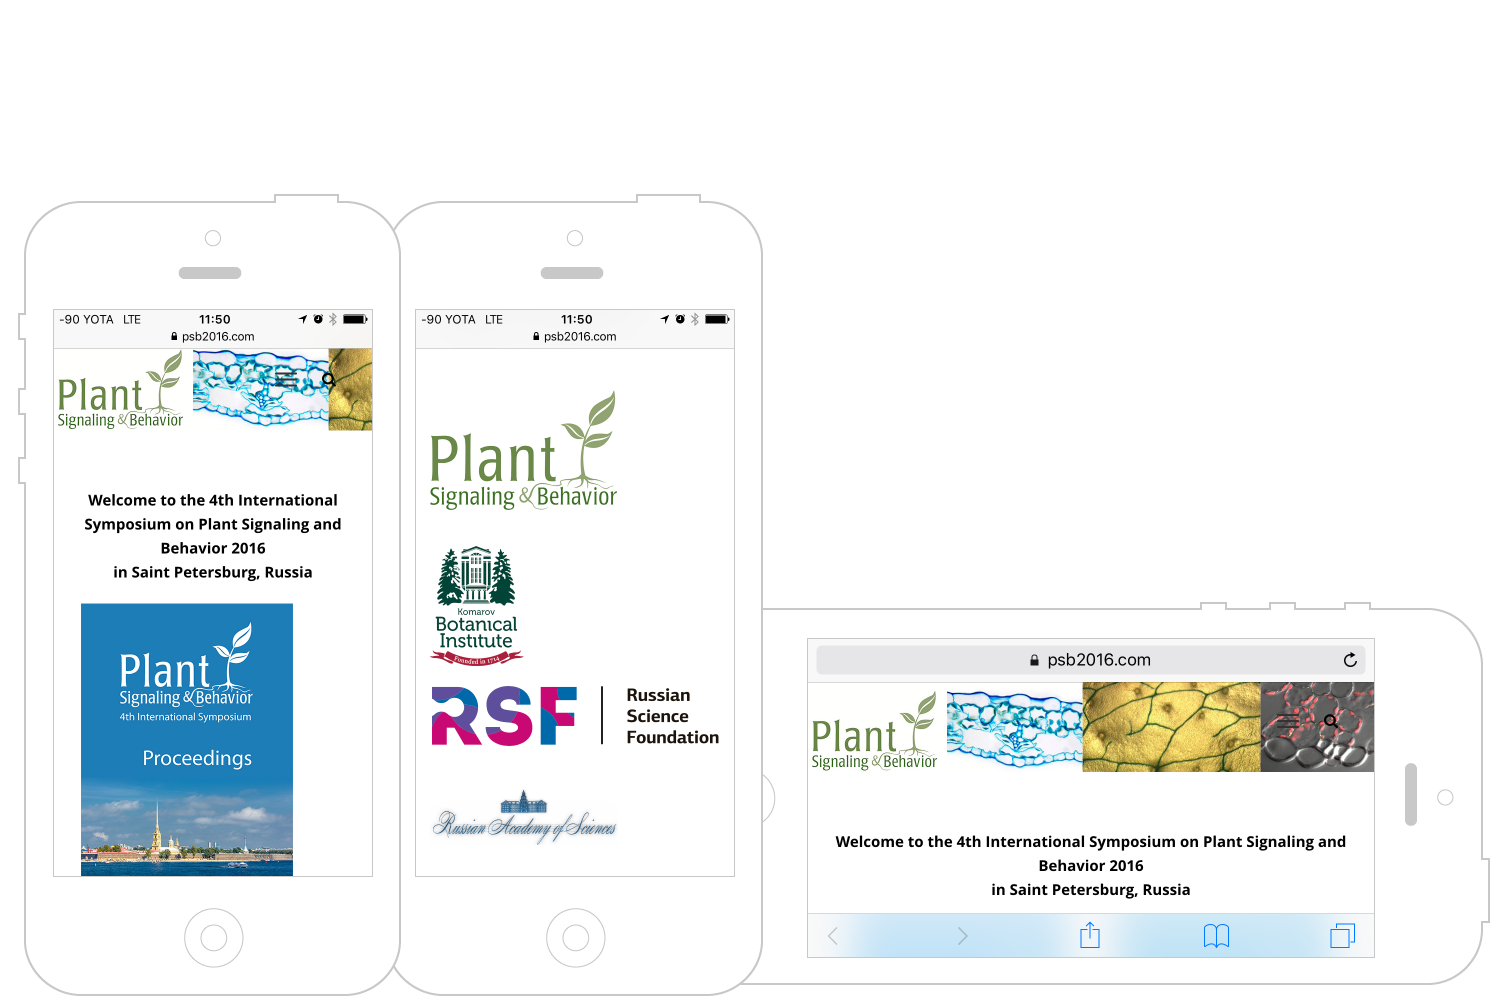 PSB2016 Symposium website on iPhone